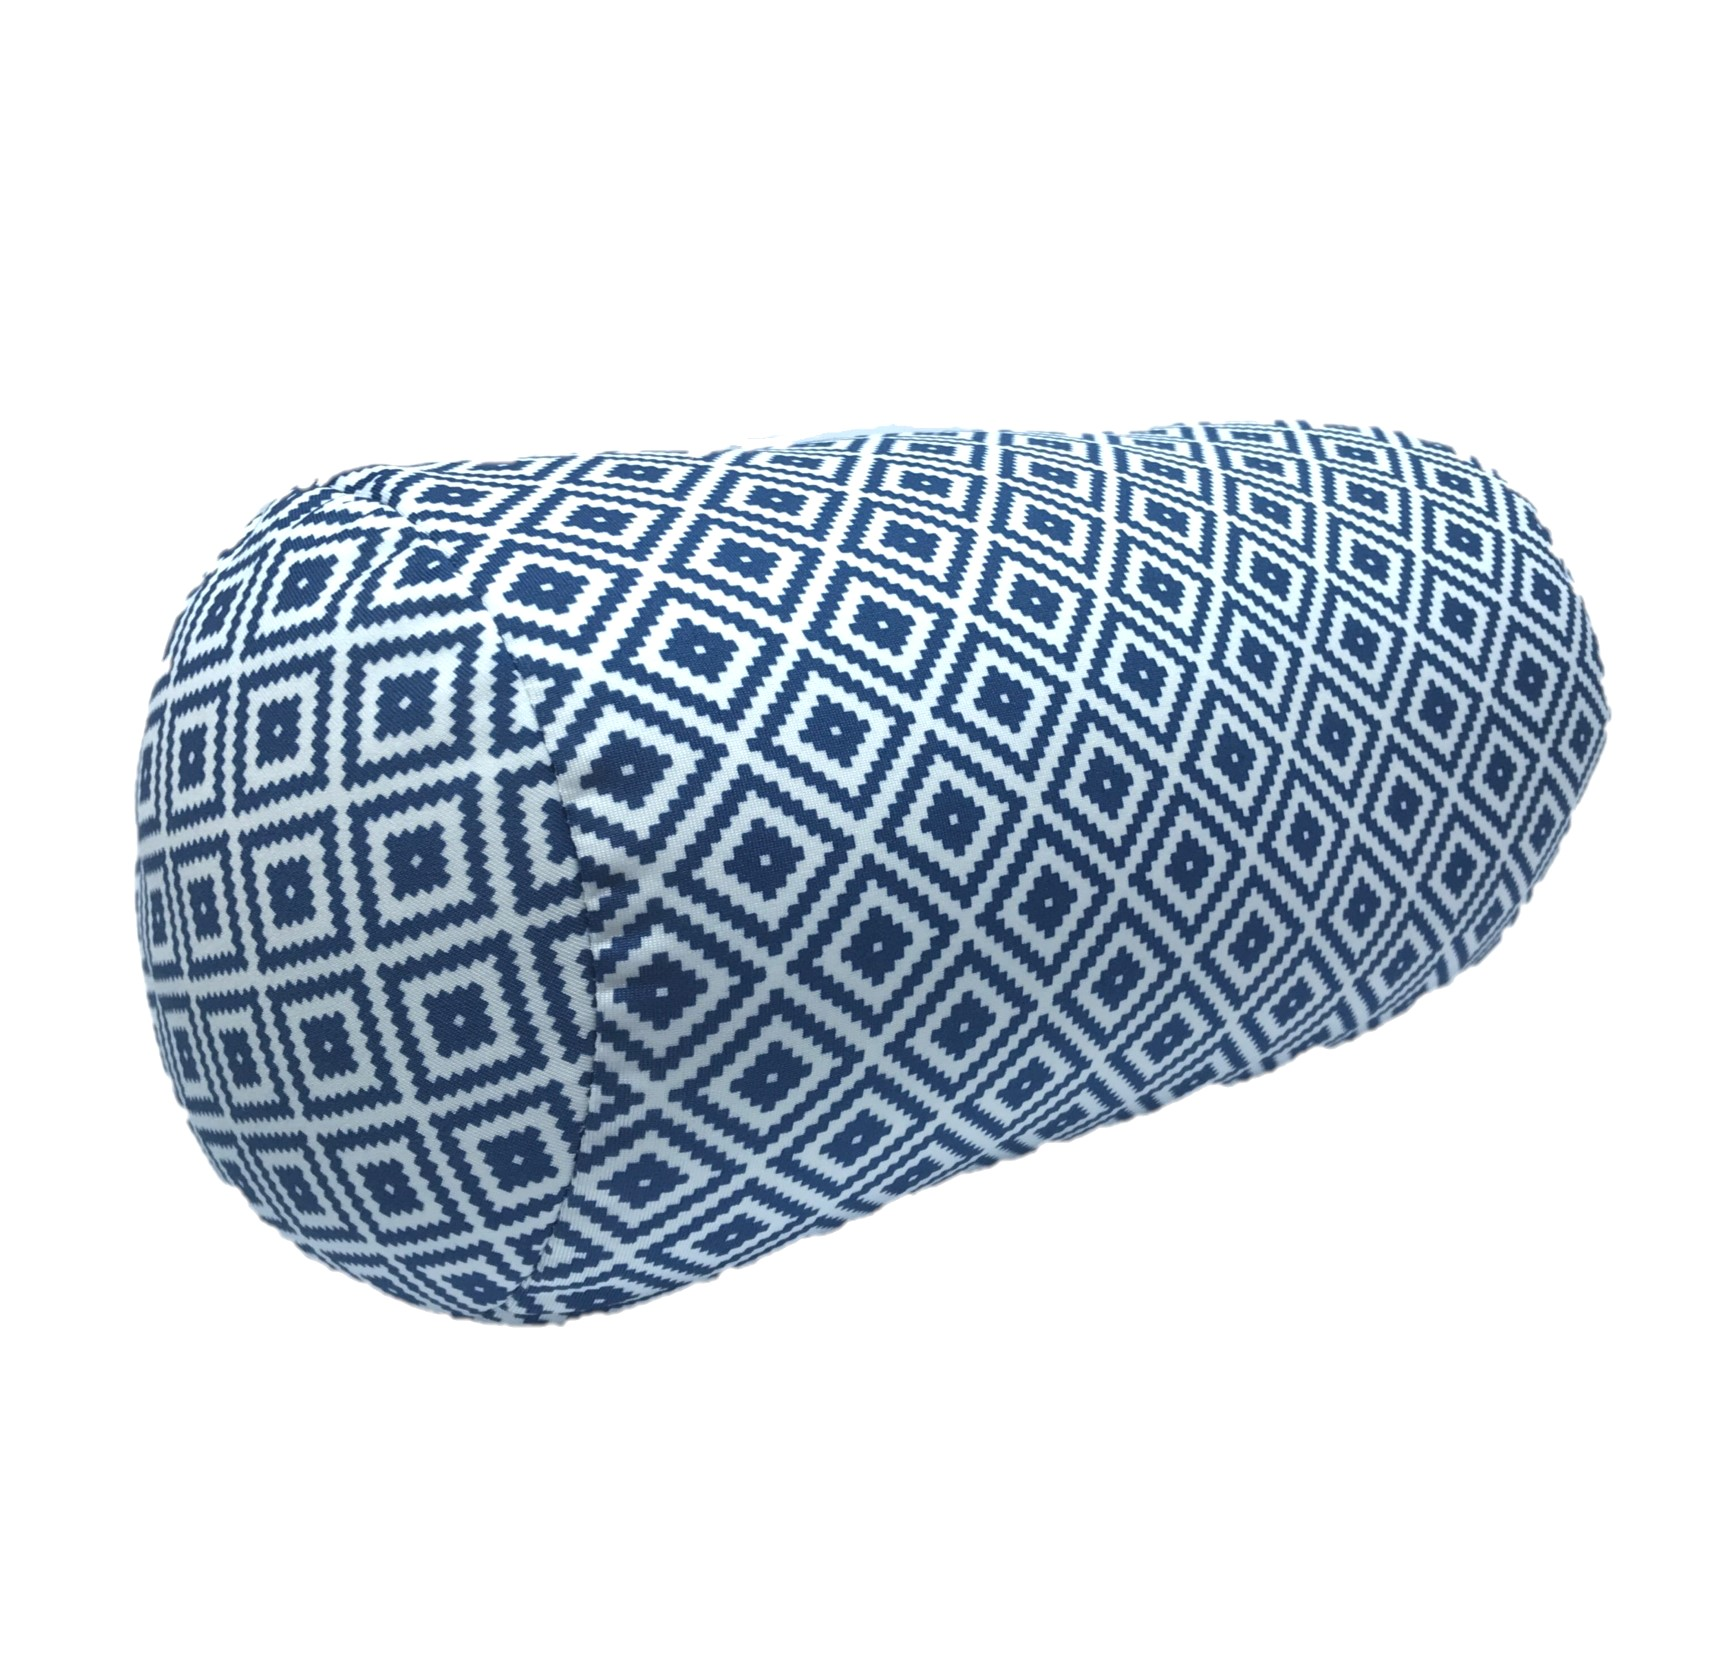 Bookishbunny Micro Bead Roll Bed Chair Car Cushion Soft Support Back Leg Throw Pillow Post Surgery Pillow Chiropractic Recommended Walmart Com Walmart Com